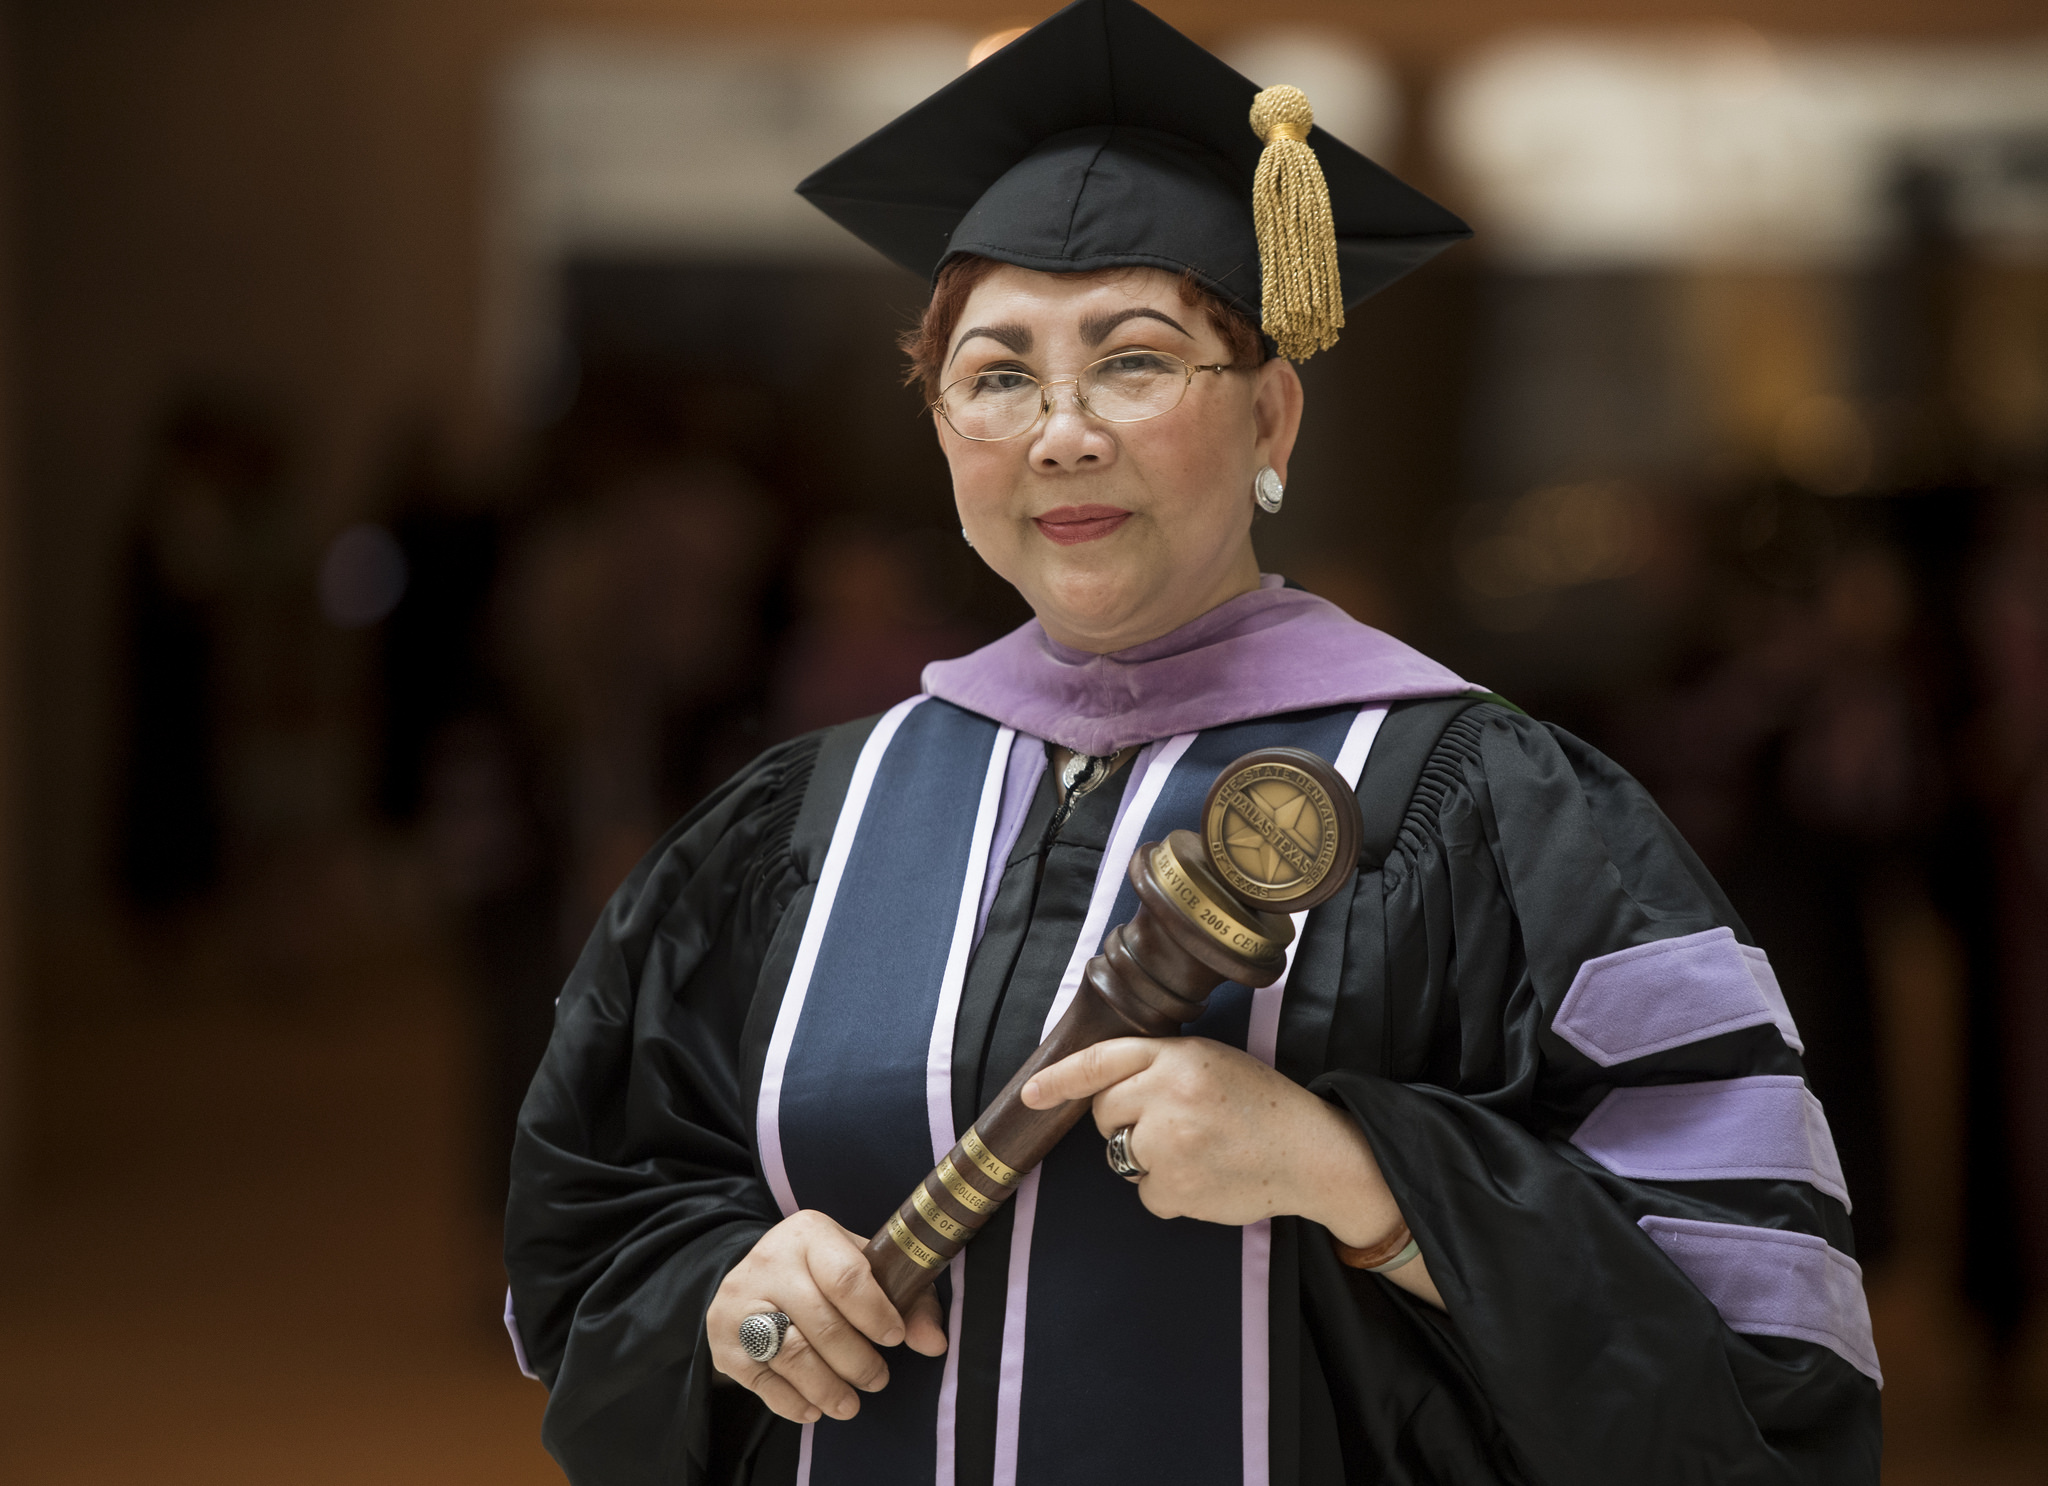 Dr. Loulou Moore